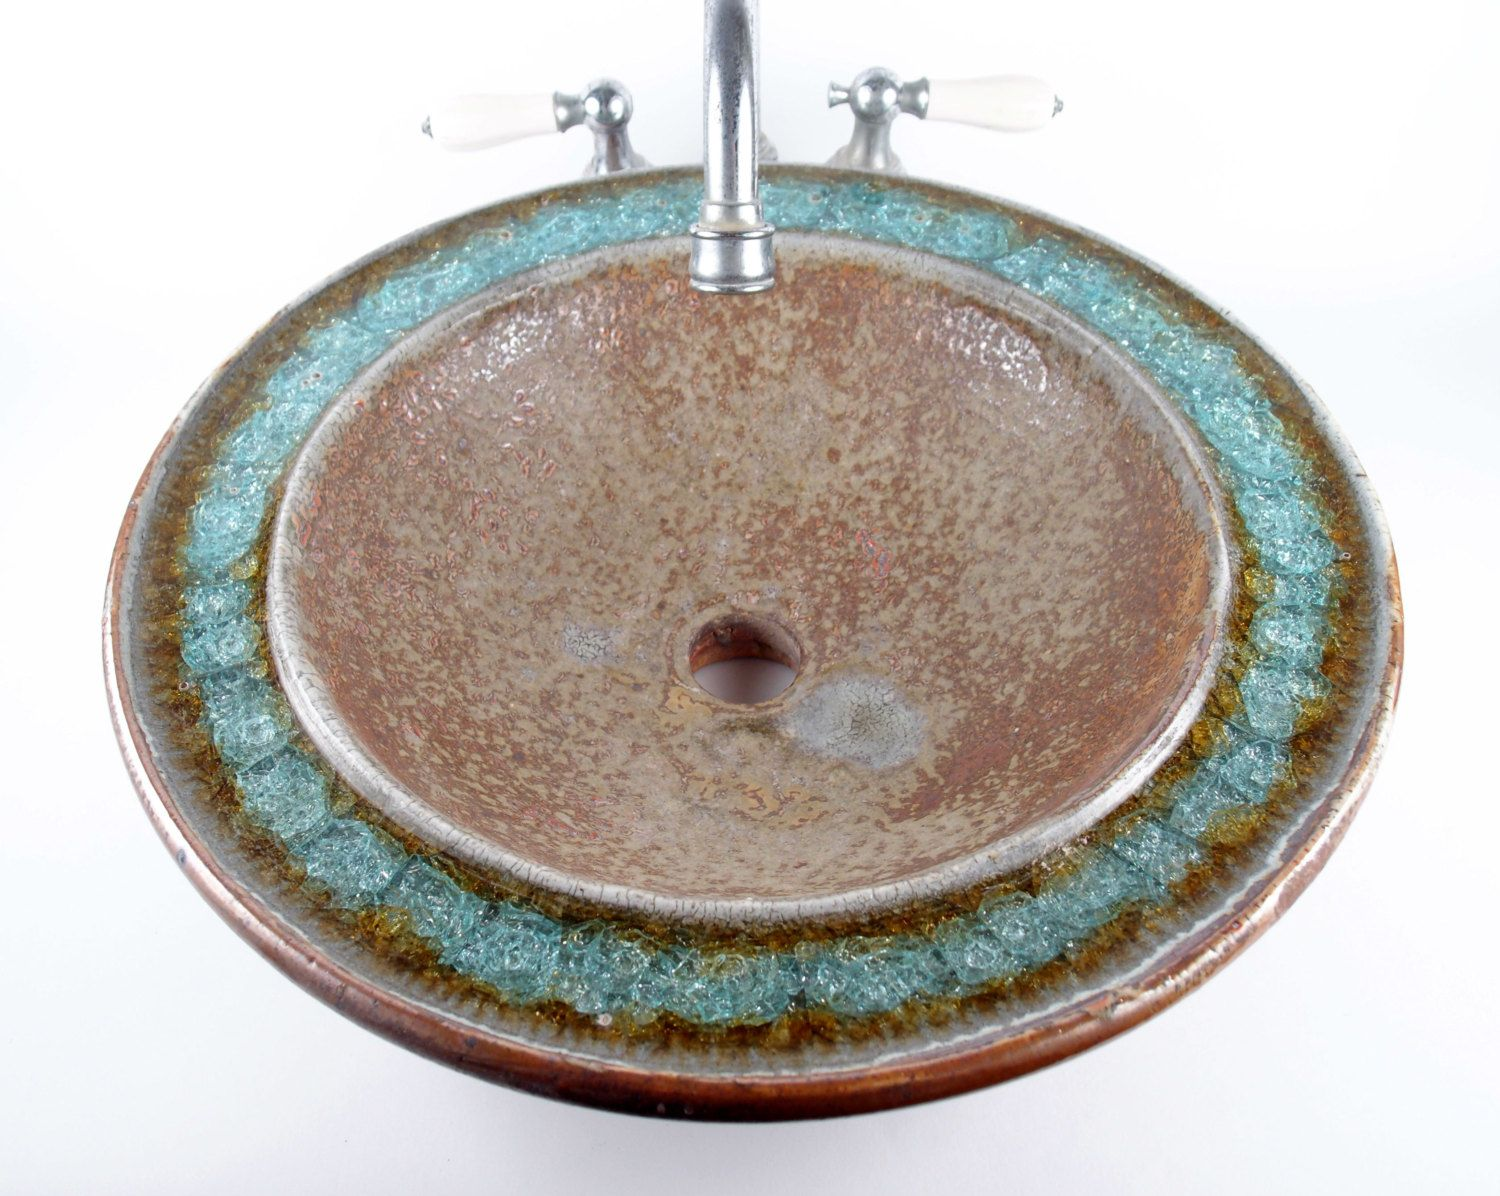 Handcrafted Sinks Add A Personal Touch To Any Bathroom Pottery